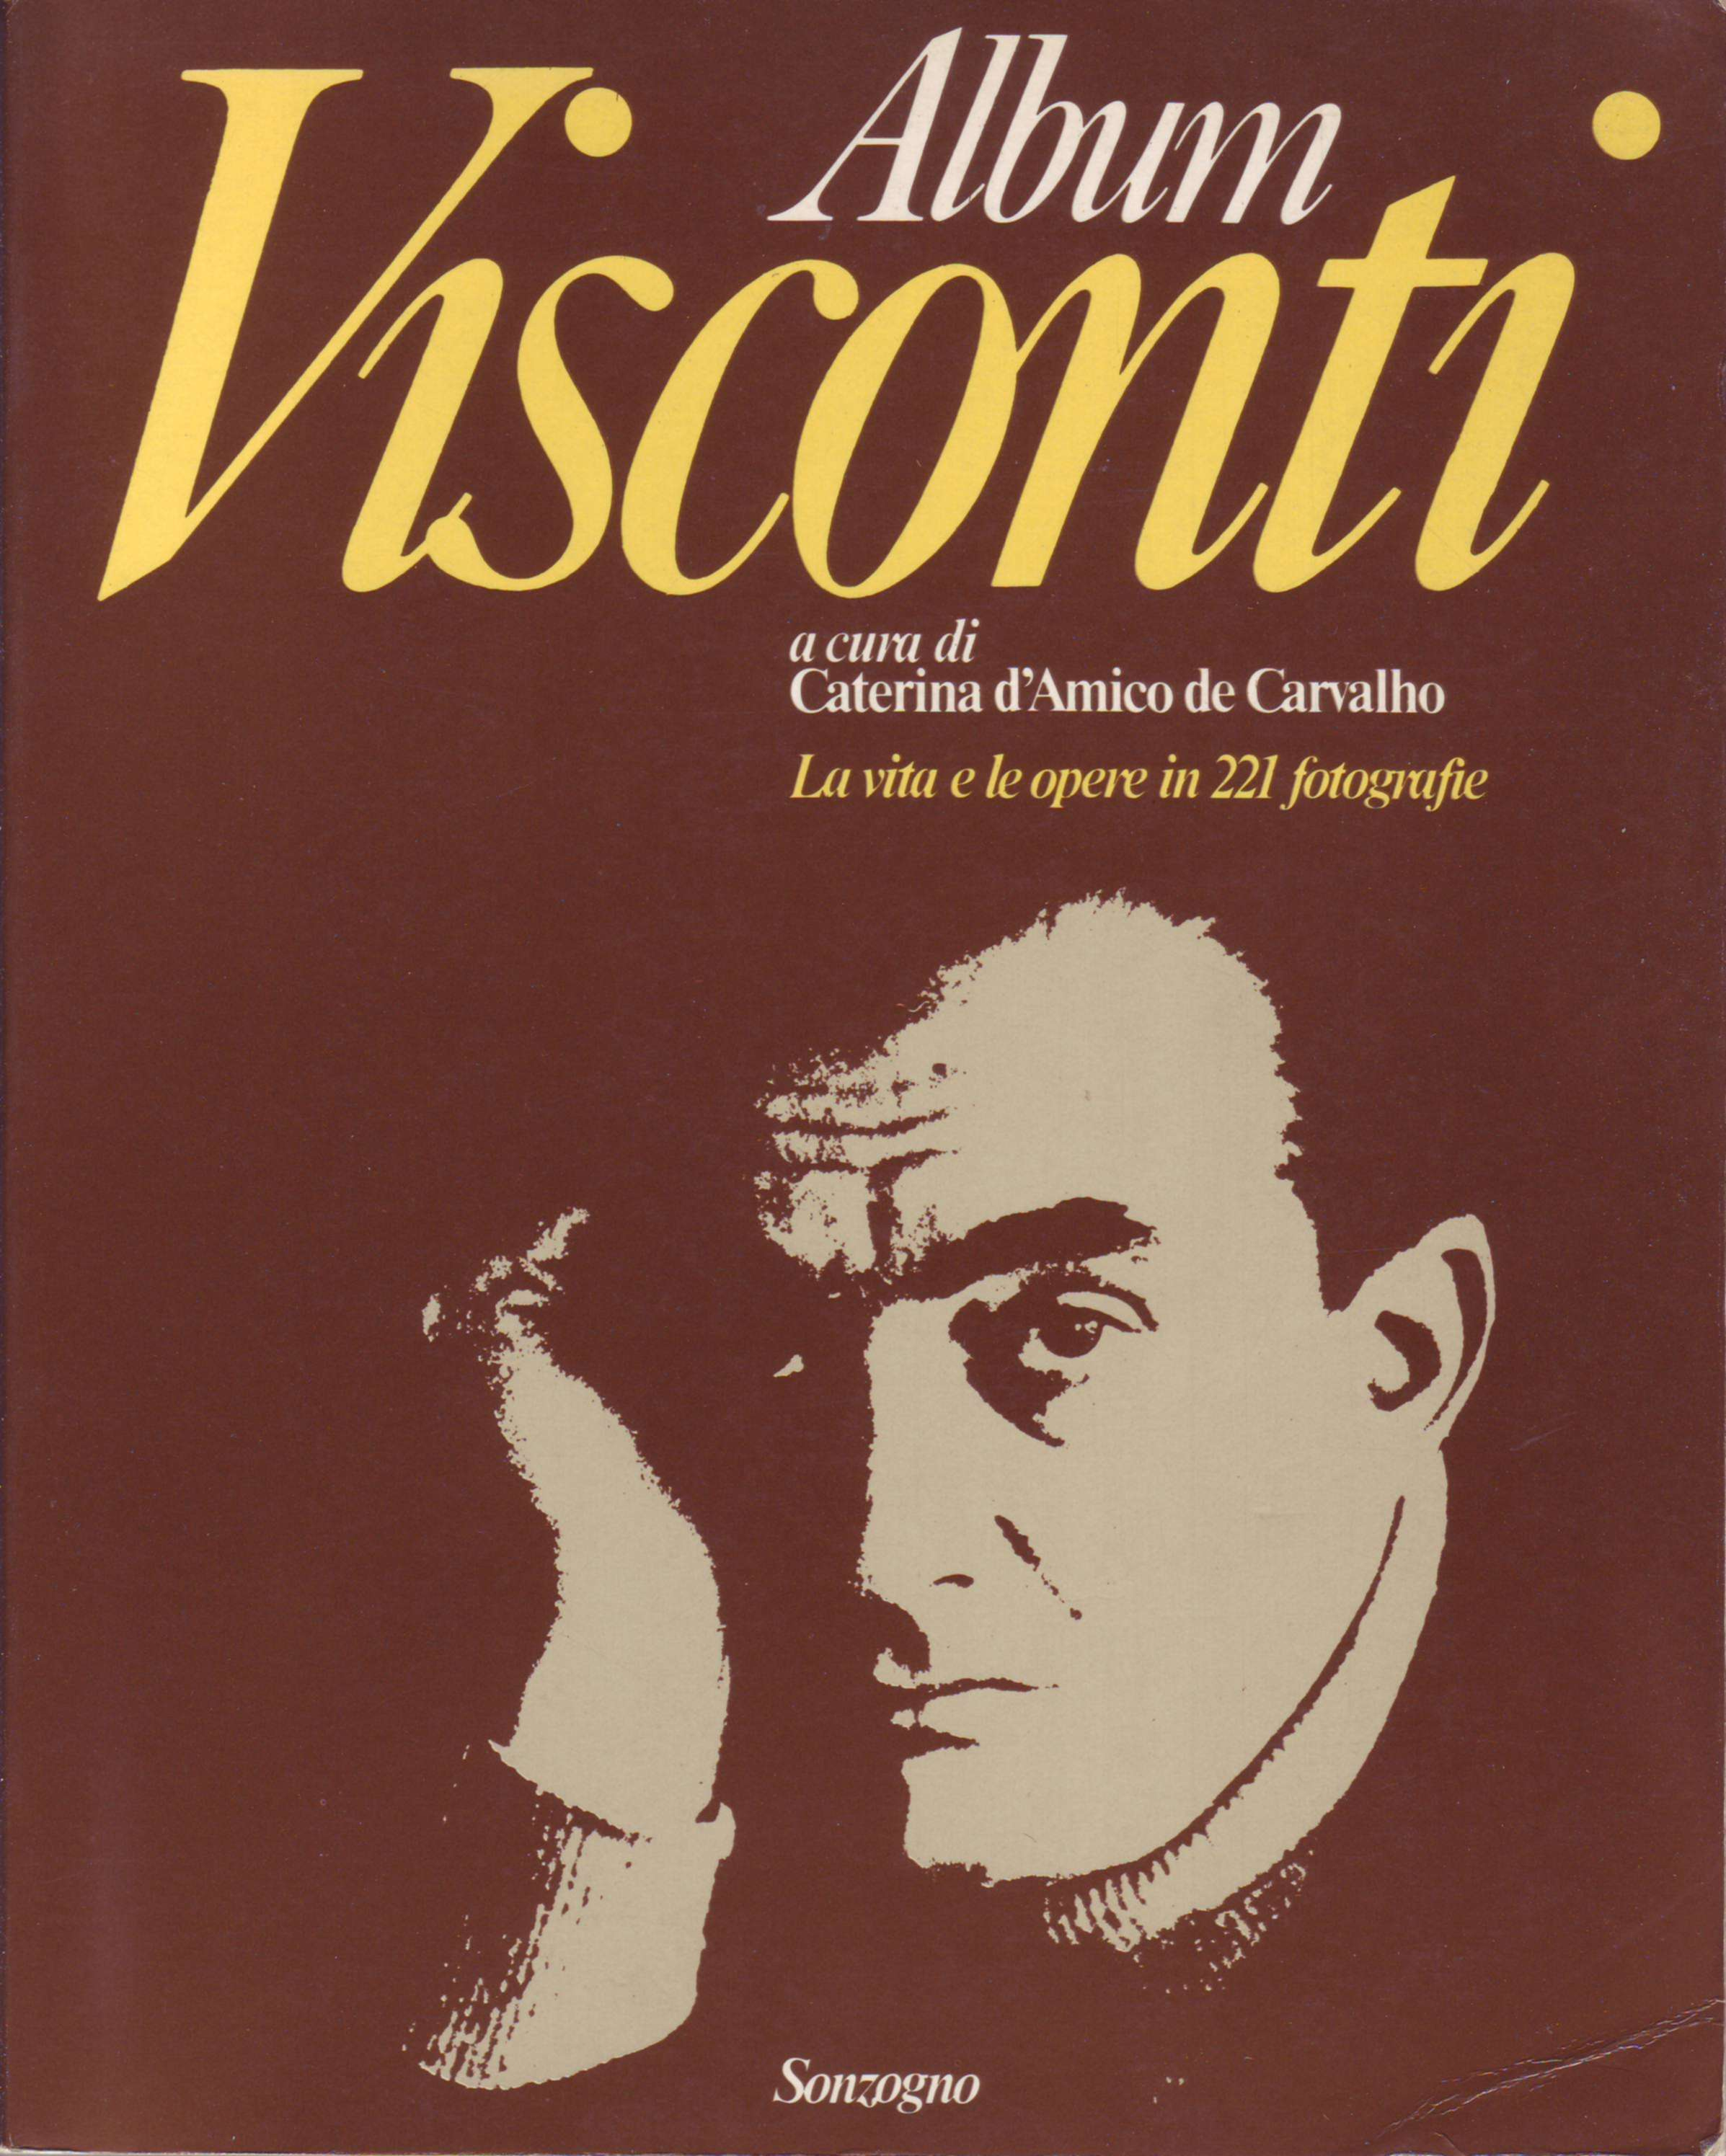 Album Visconti